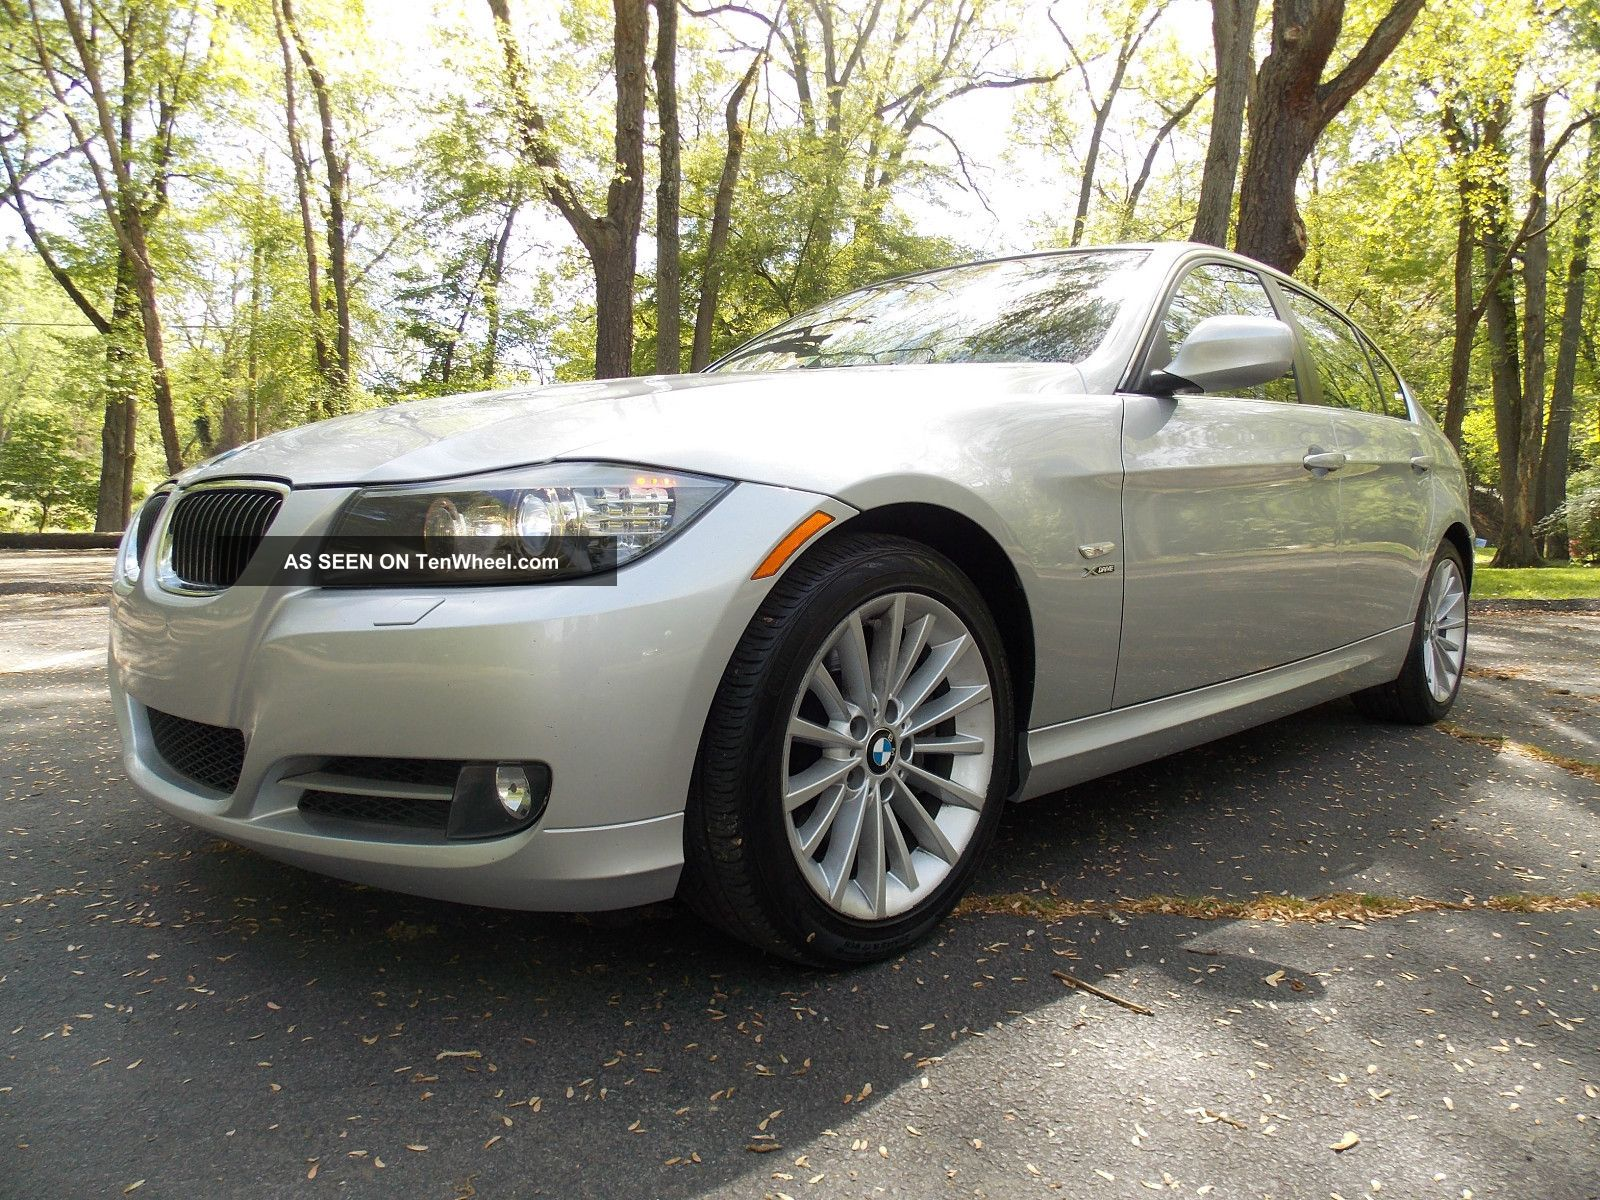 2009 Bmw 335 Xdrive With Premium Package And 3-Series photo